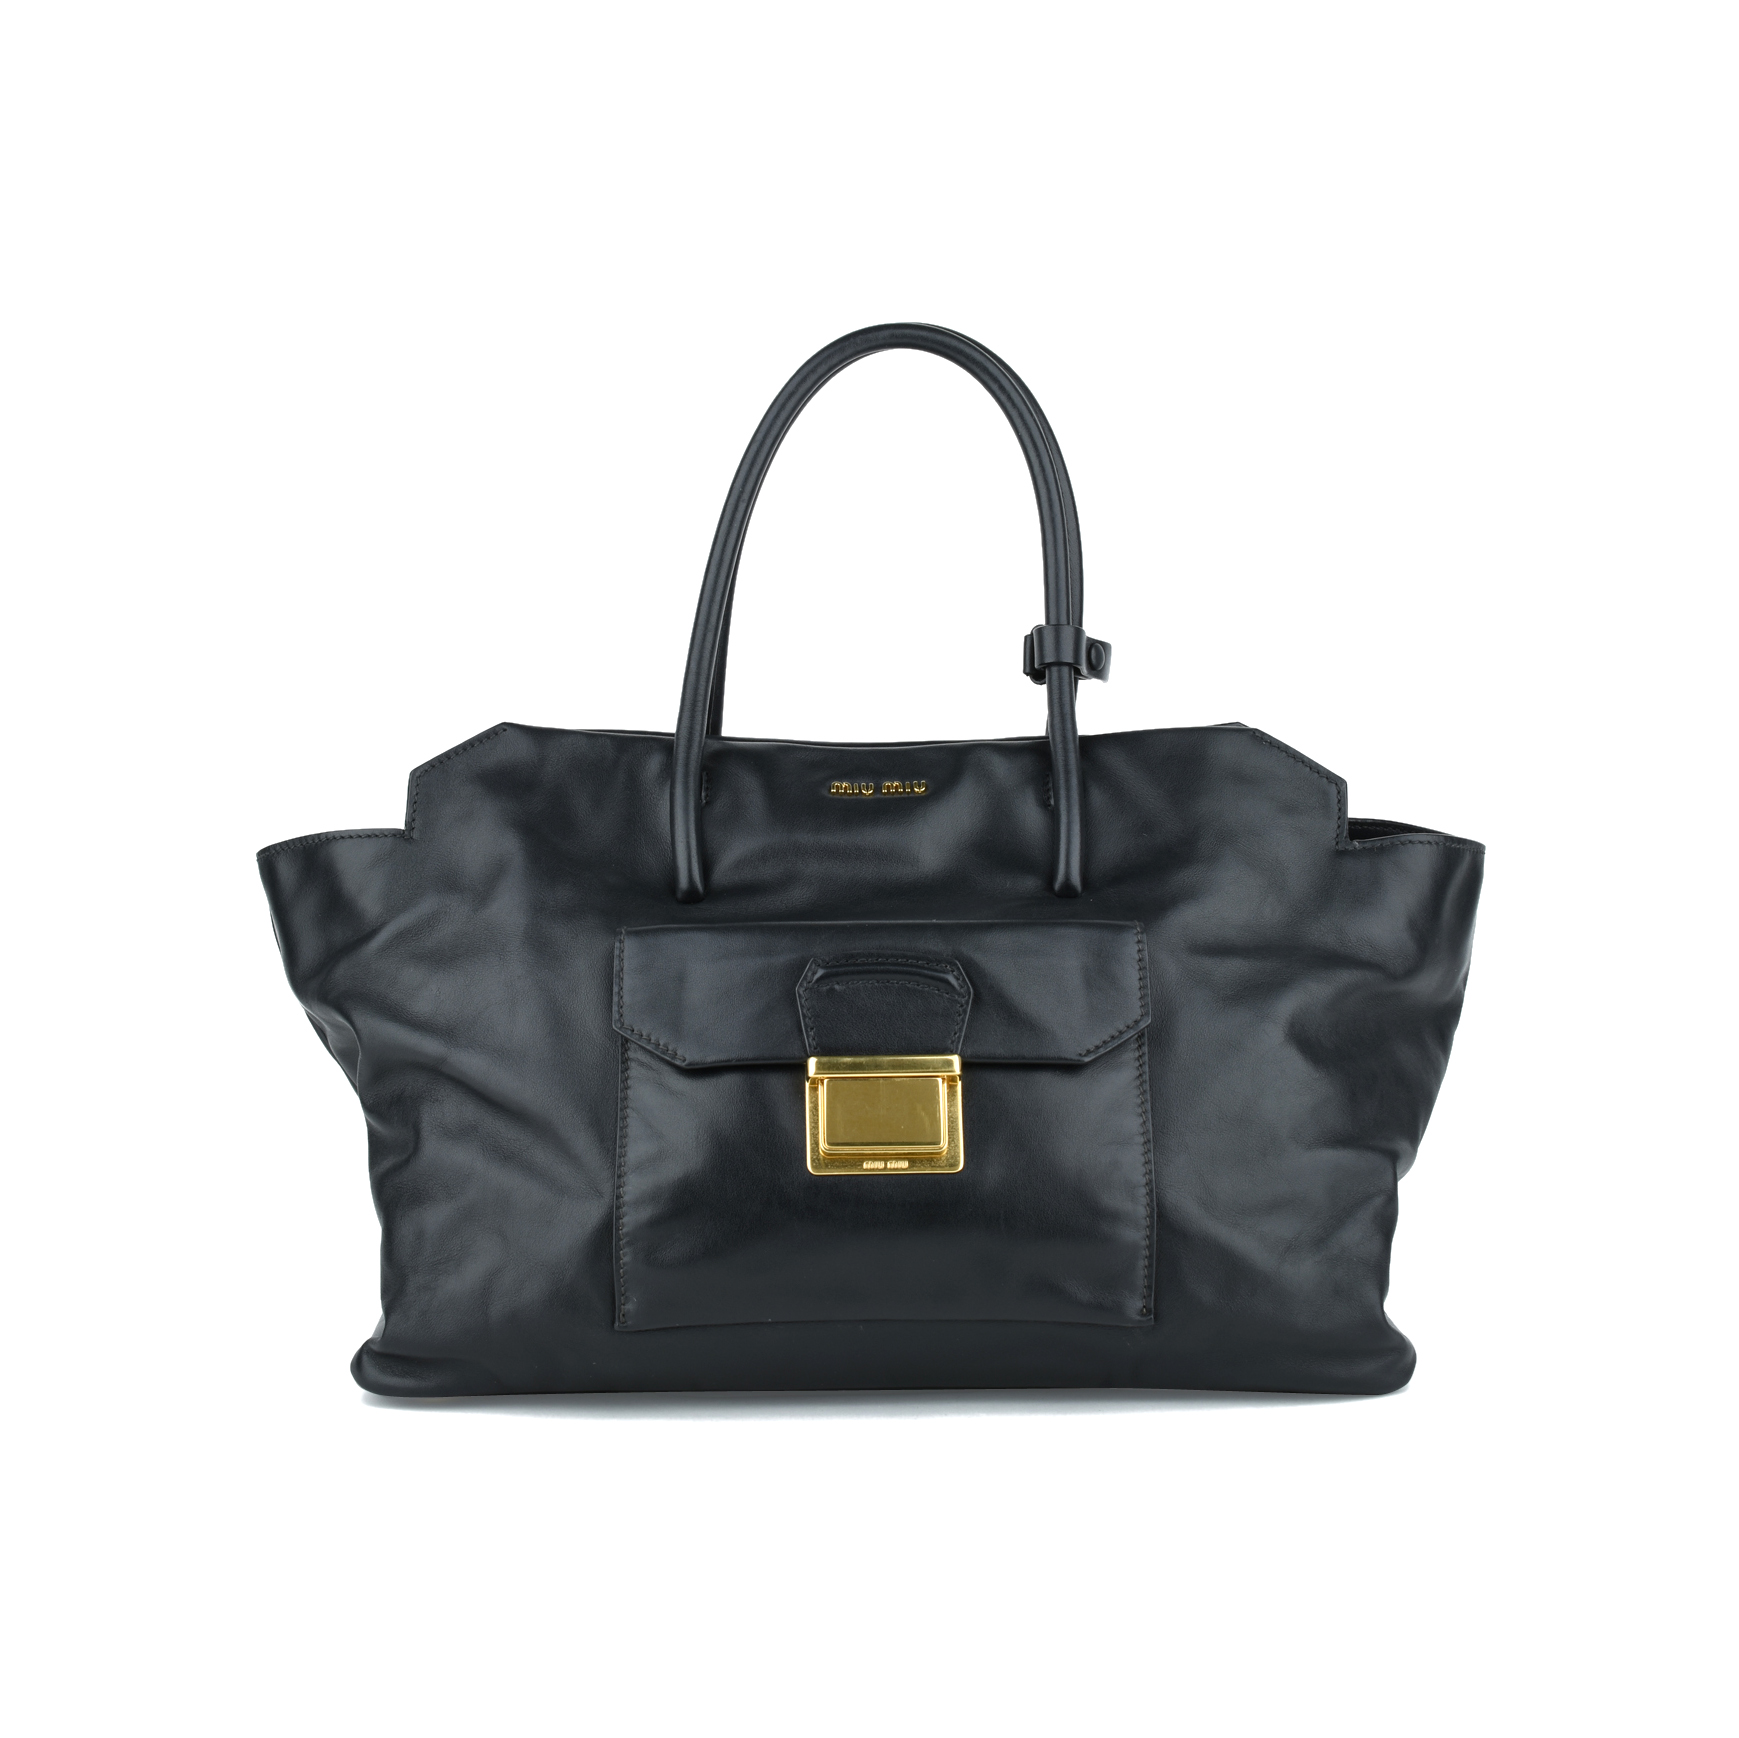 b0deab19d6a2 Authentic Second Hand Miu Miu Vitello Soft Tote Bag (PSS-416-00003 ...